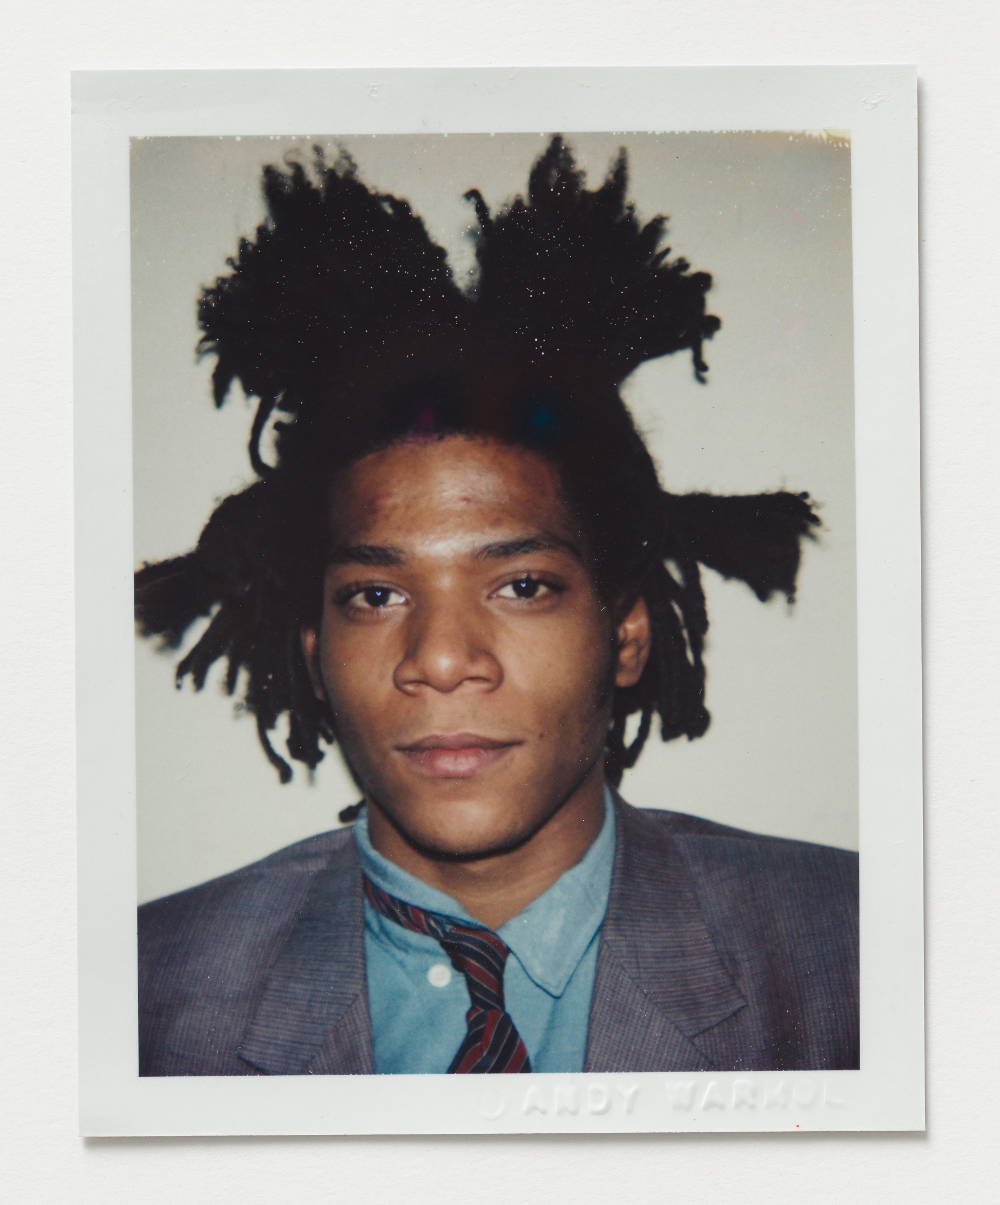 Andy Warhol, Jean-Michel Basquiat, 1982. Polacolor ER 10.8 x 8.5 cm / 4.3 x 3.4 in. [H x W] Embossed recto lower right ©ANDY WARHOL; inscribed verso upper centre in pencil FA05.01692; stamped verso lower left and lower right Authorized by the Andy Warhol Foundation for the Visual Arts, The Estate of Andy Warhol. © 2018 The Andy Warhol Foundation for the Visual Arts, Inc. / Licensed by DACS, London. Courtesy BASTIAN, London